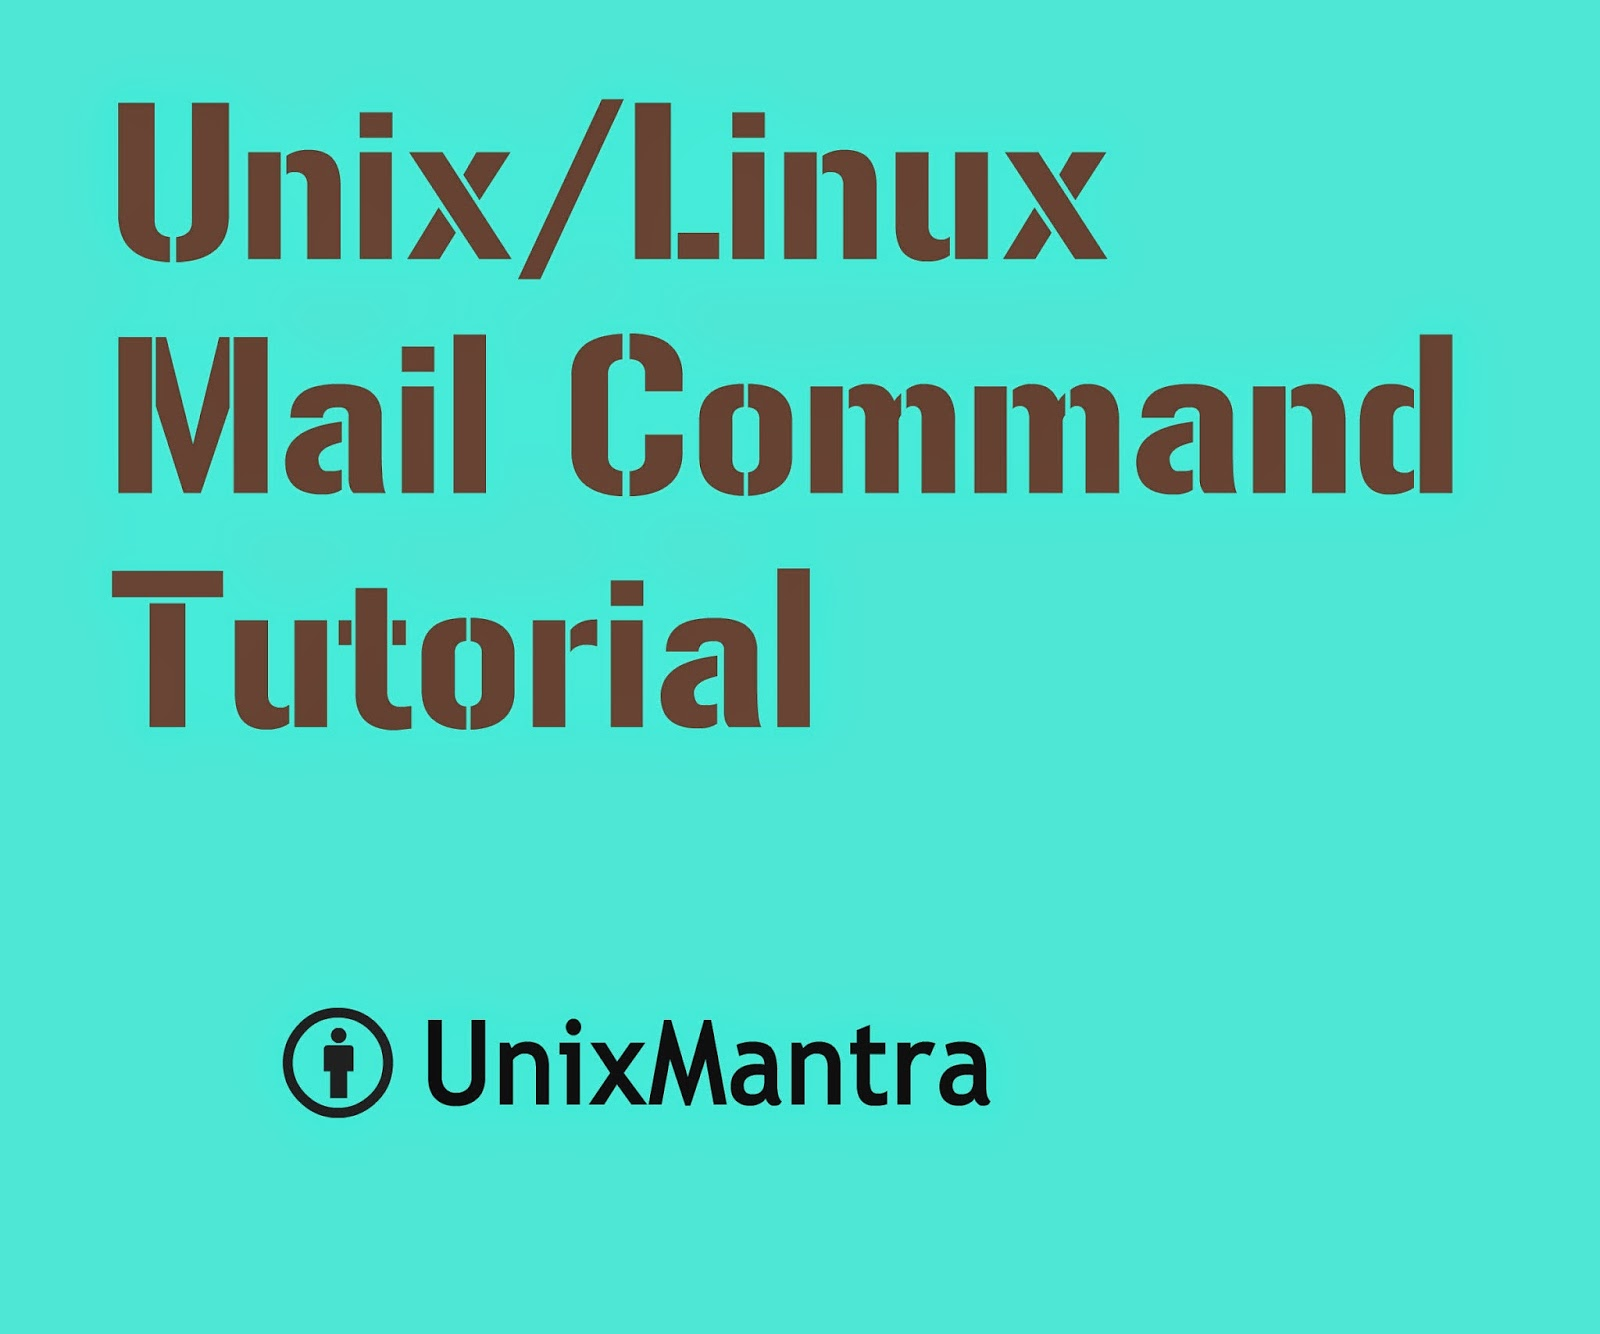 unix-linux-mail-command-tutorial